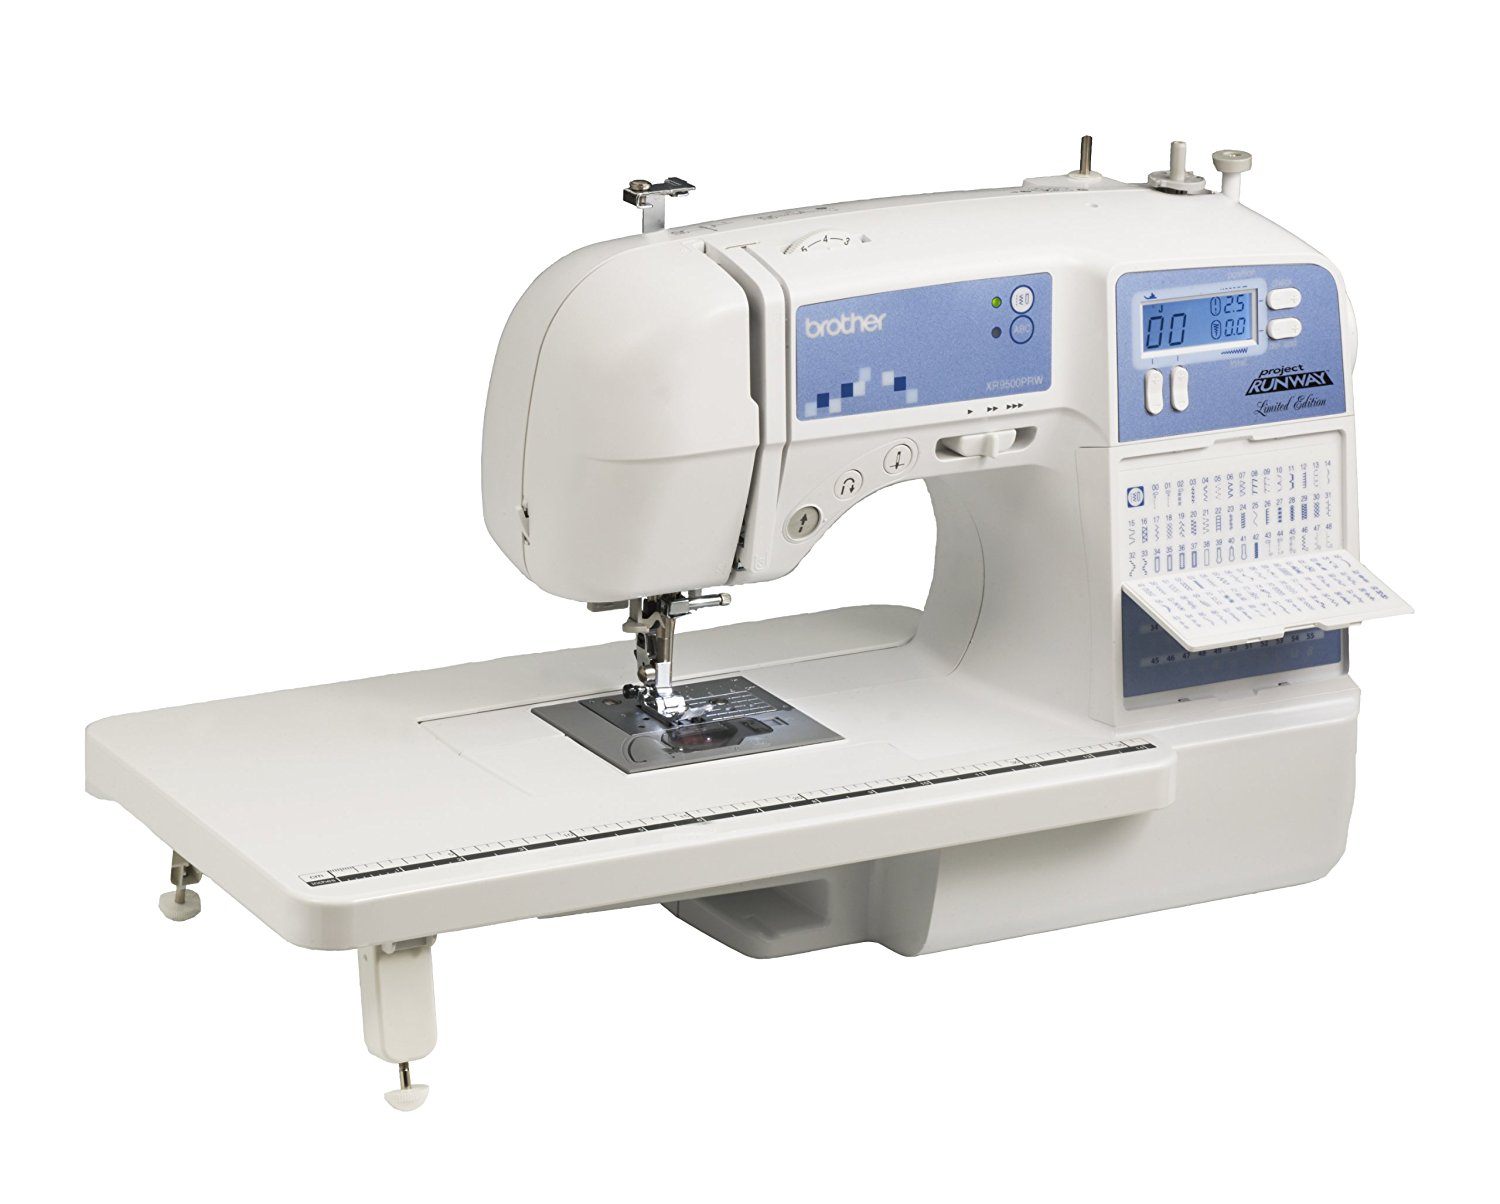 Refurbished brother project runway computerized sewing machine 100.